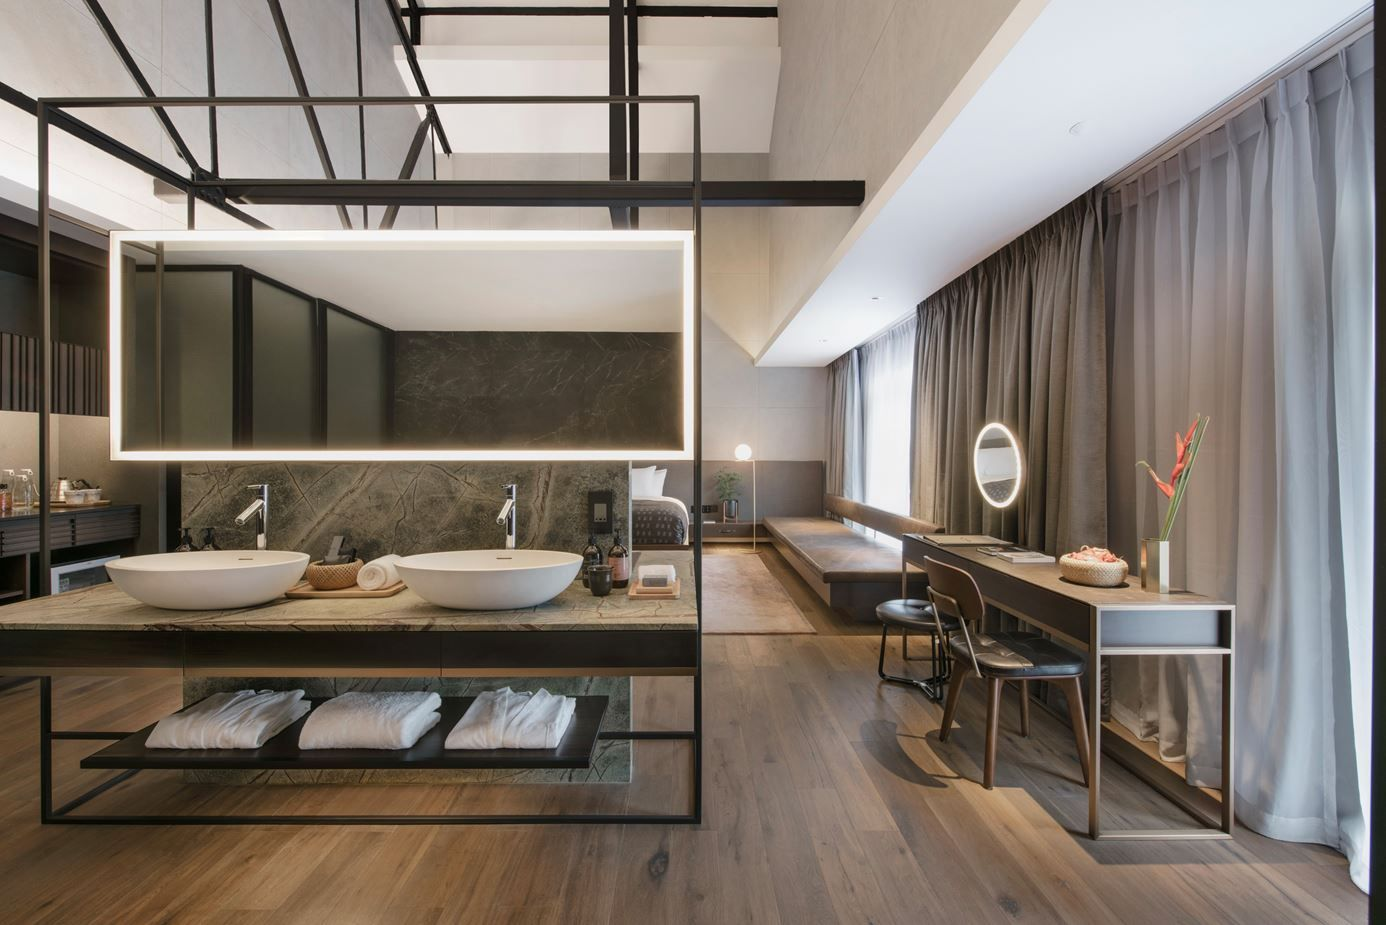 Badezimmer ideen hotel the warehouse hotel  picture gallery  hotel rooms  pinterest